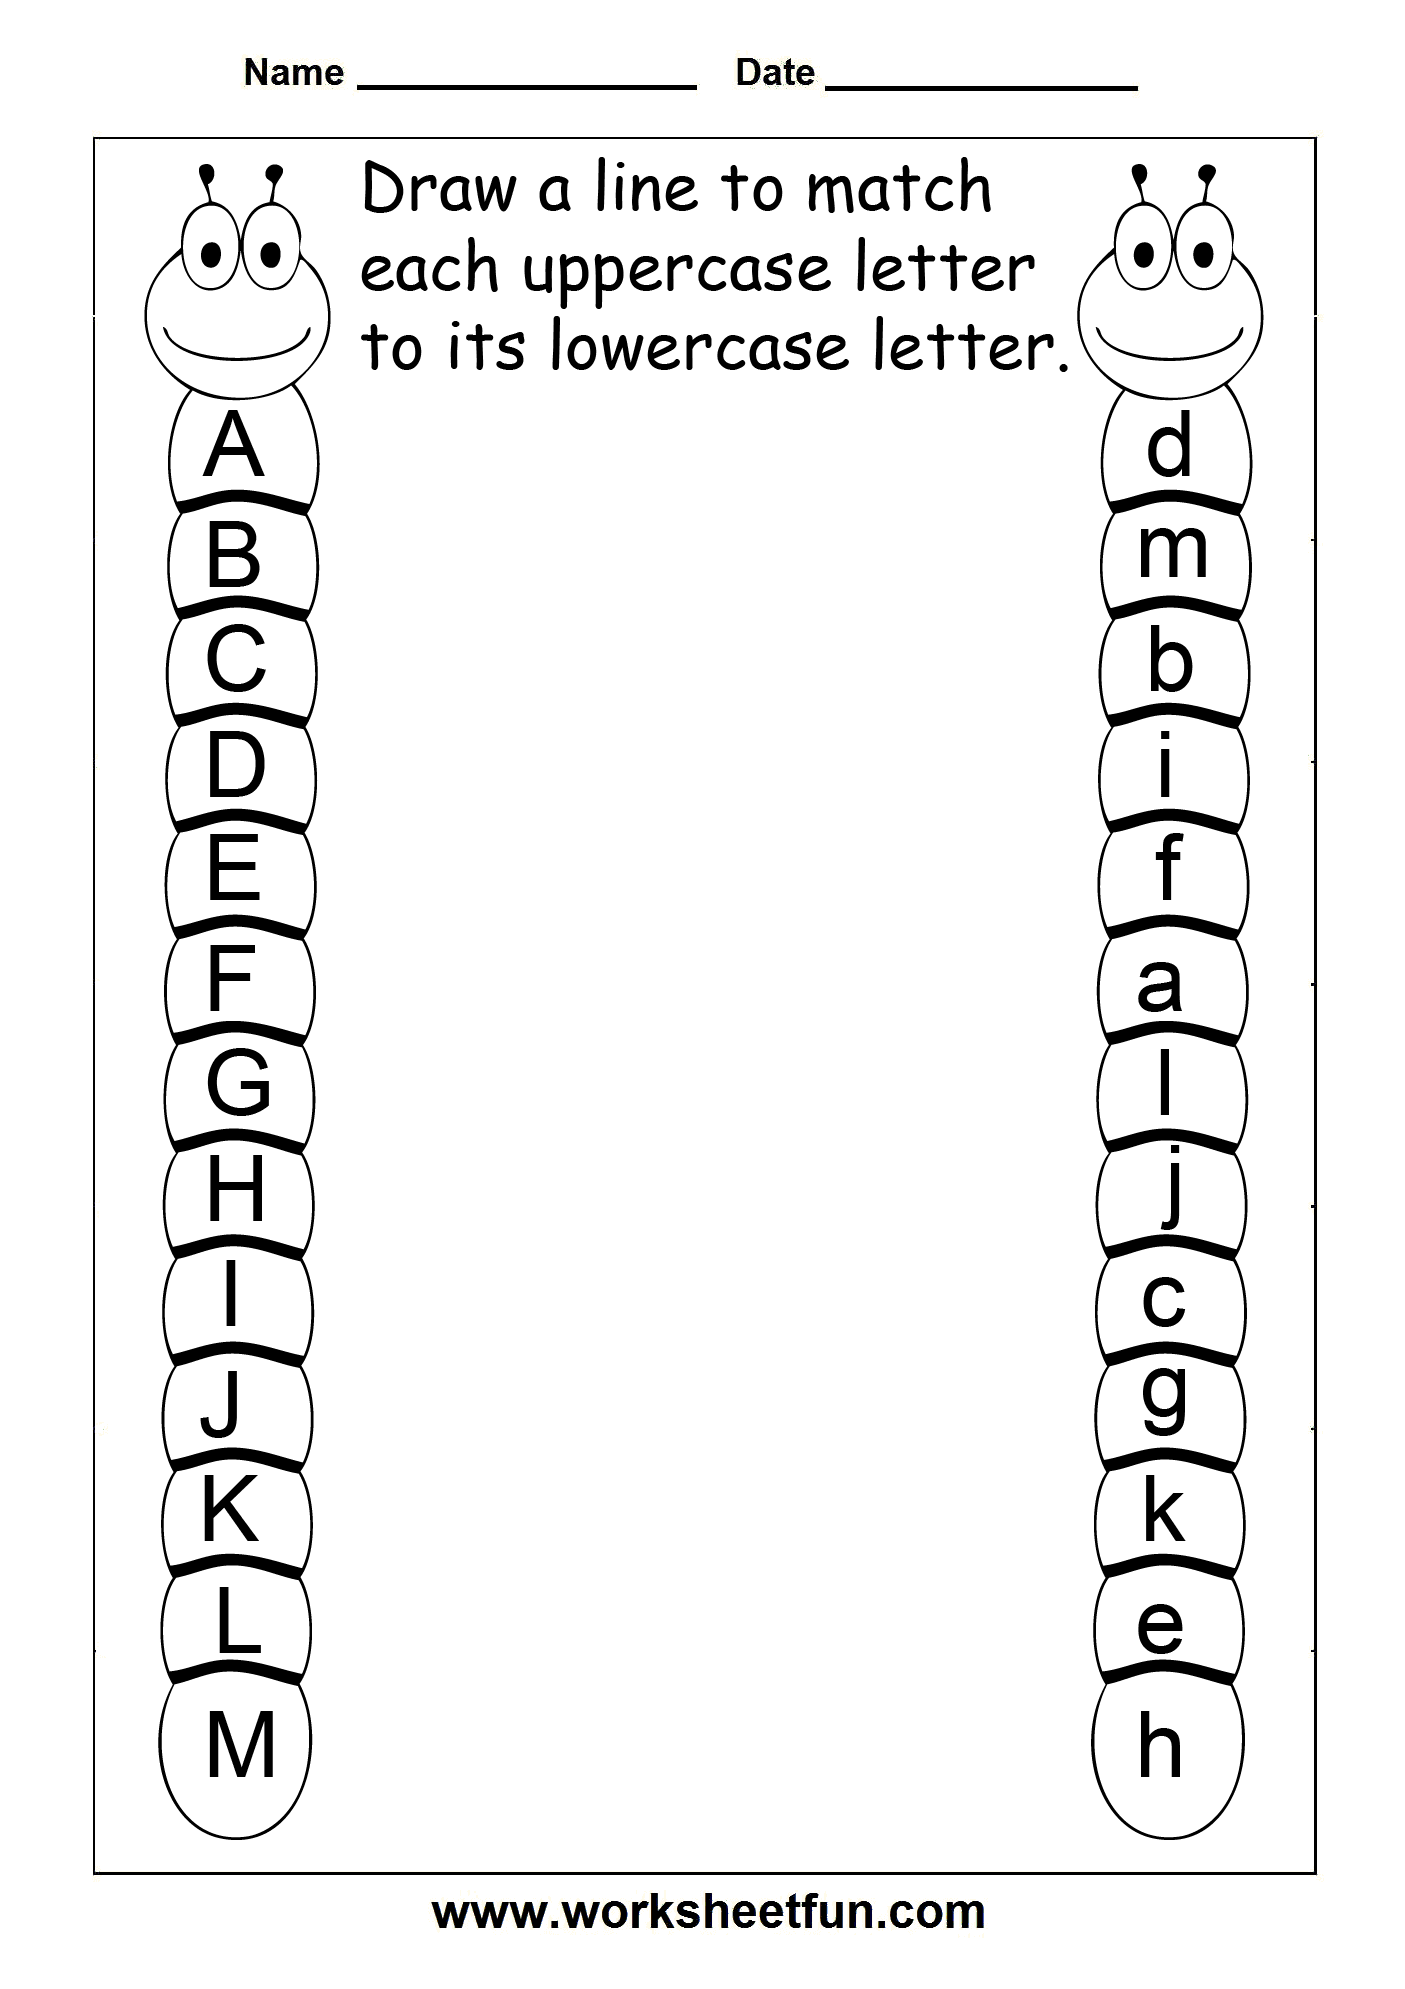 Pin Letter Matching Worksheet J M Children Draw Lines To